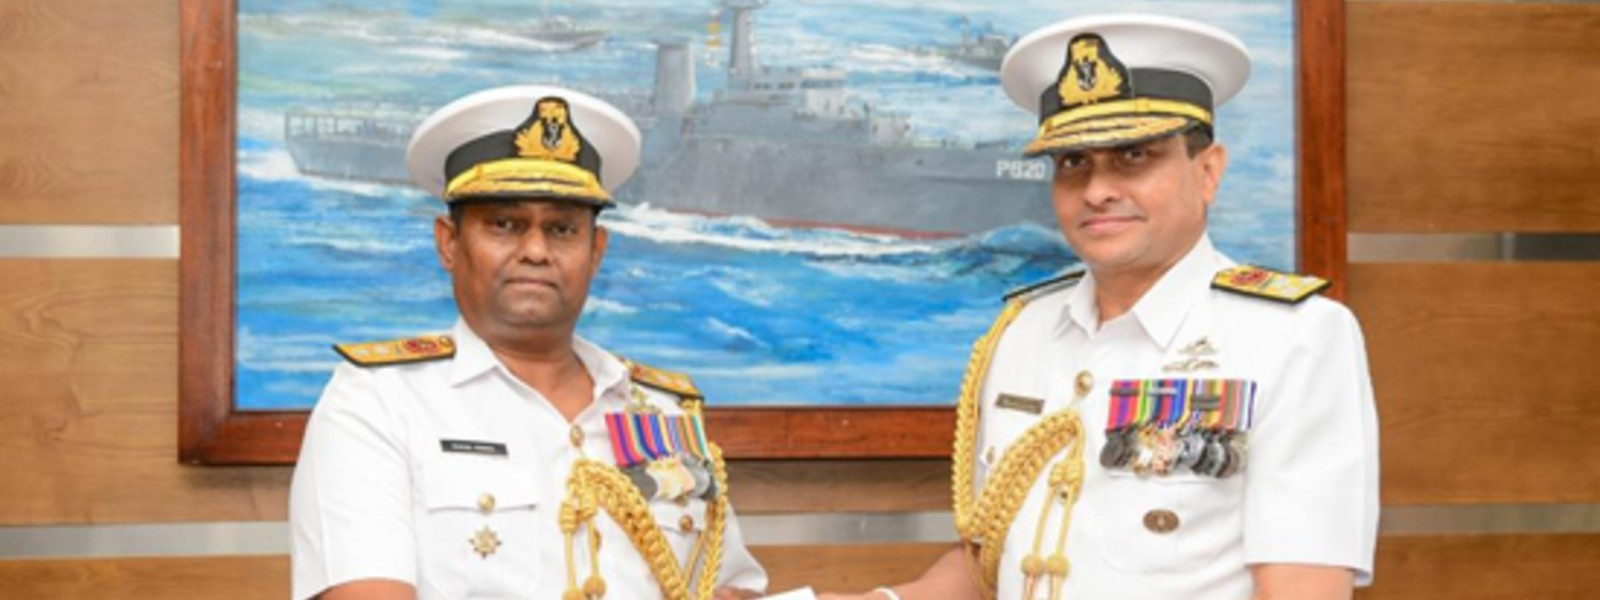 Rear Admiral Ruwan Perera appointed as Chief of Staff of the Navy